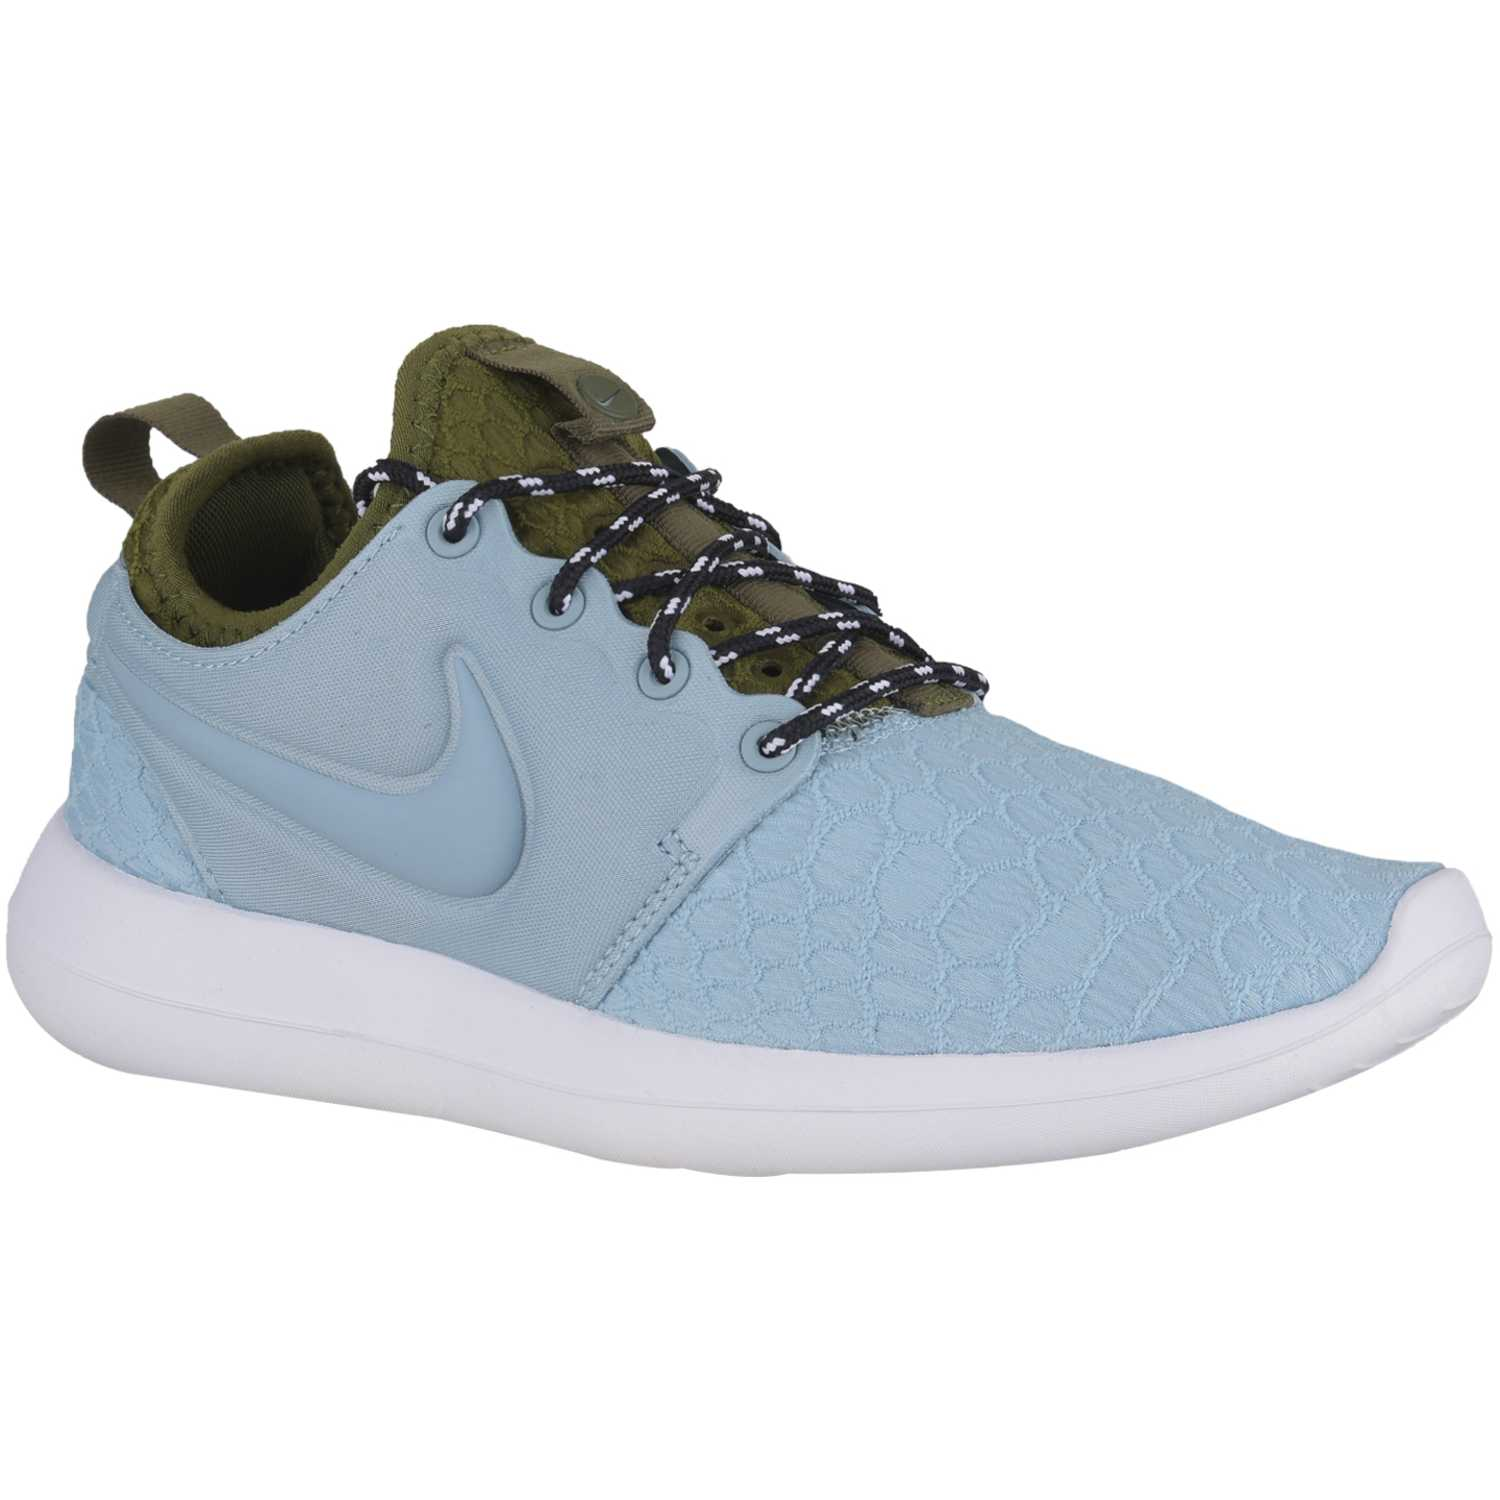 Nike wmns roshe two se Celeste / blanco Walking